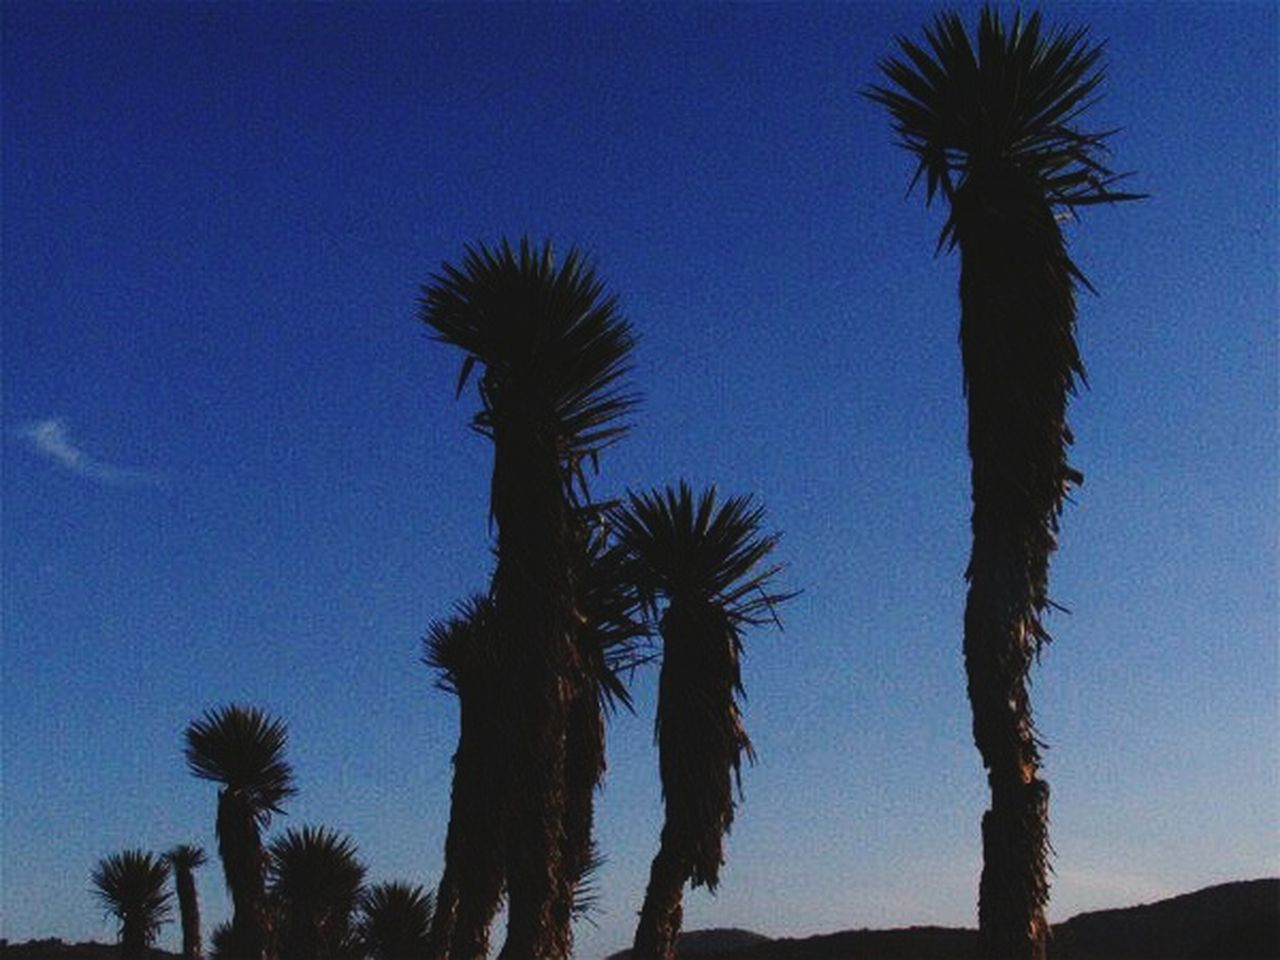 palm tree, low angle view, beauty in nature, nature, growth, no people, tree, blue, silhouette, scenics, tranquility, tree trunk, sky, outdoors, saguaro cactus, clear sky, day